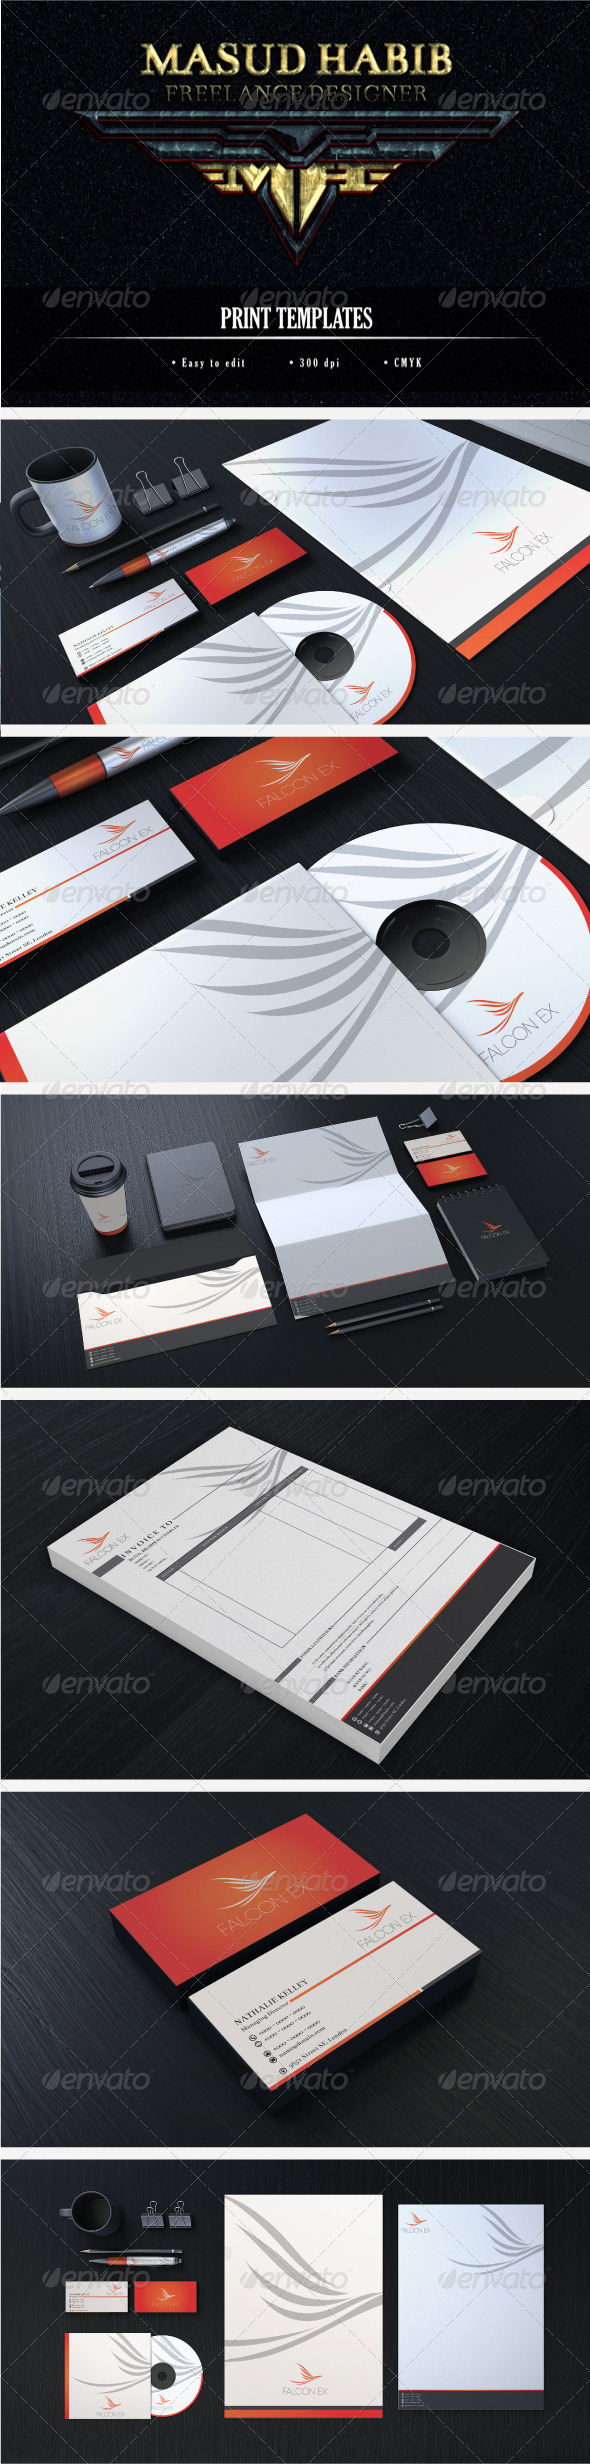 Creative Corporate Identity 14 - Stationery Print Templates